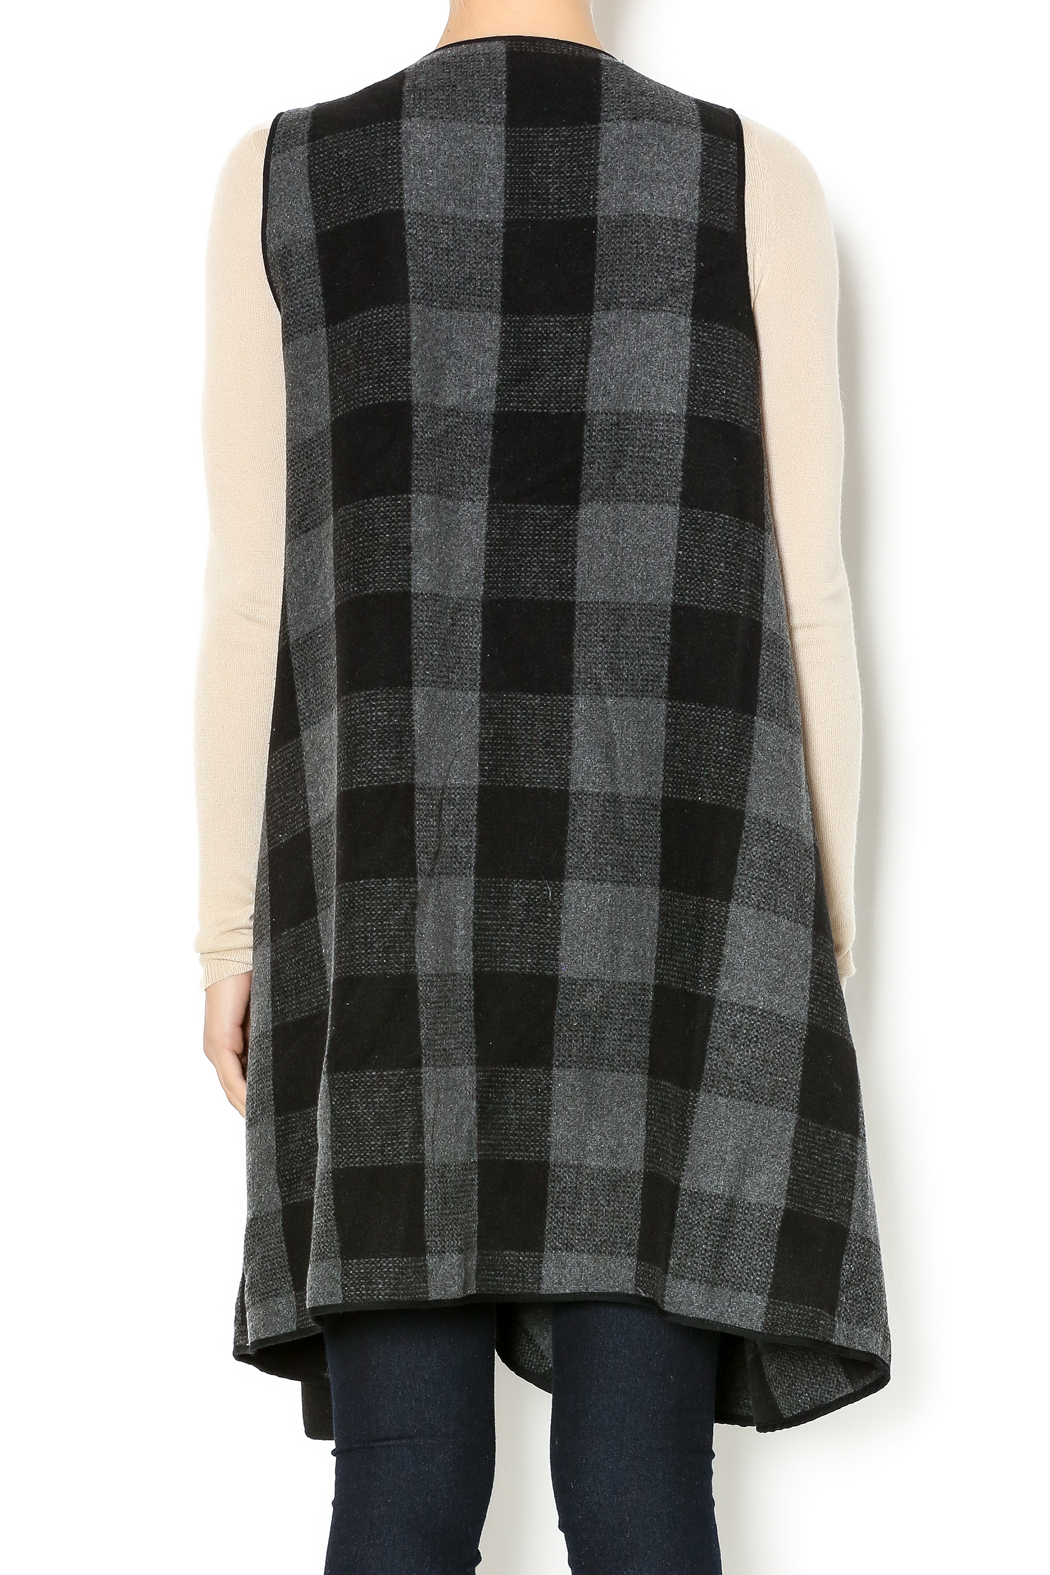 may and july inc Plaid Sweater Cardigan - Back Cropped Image